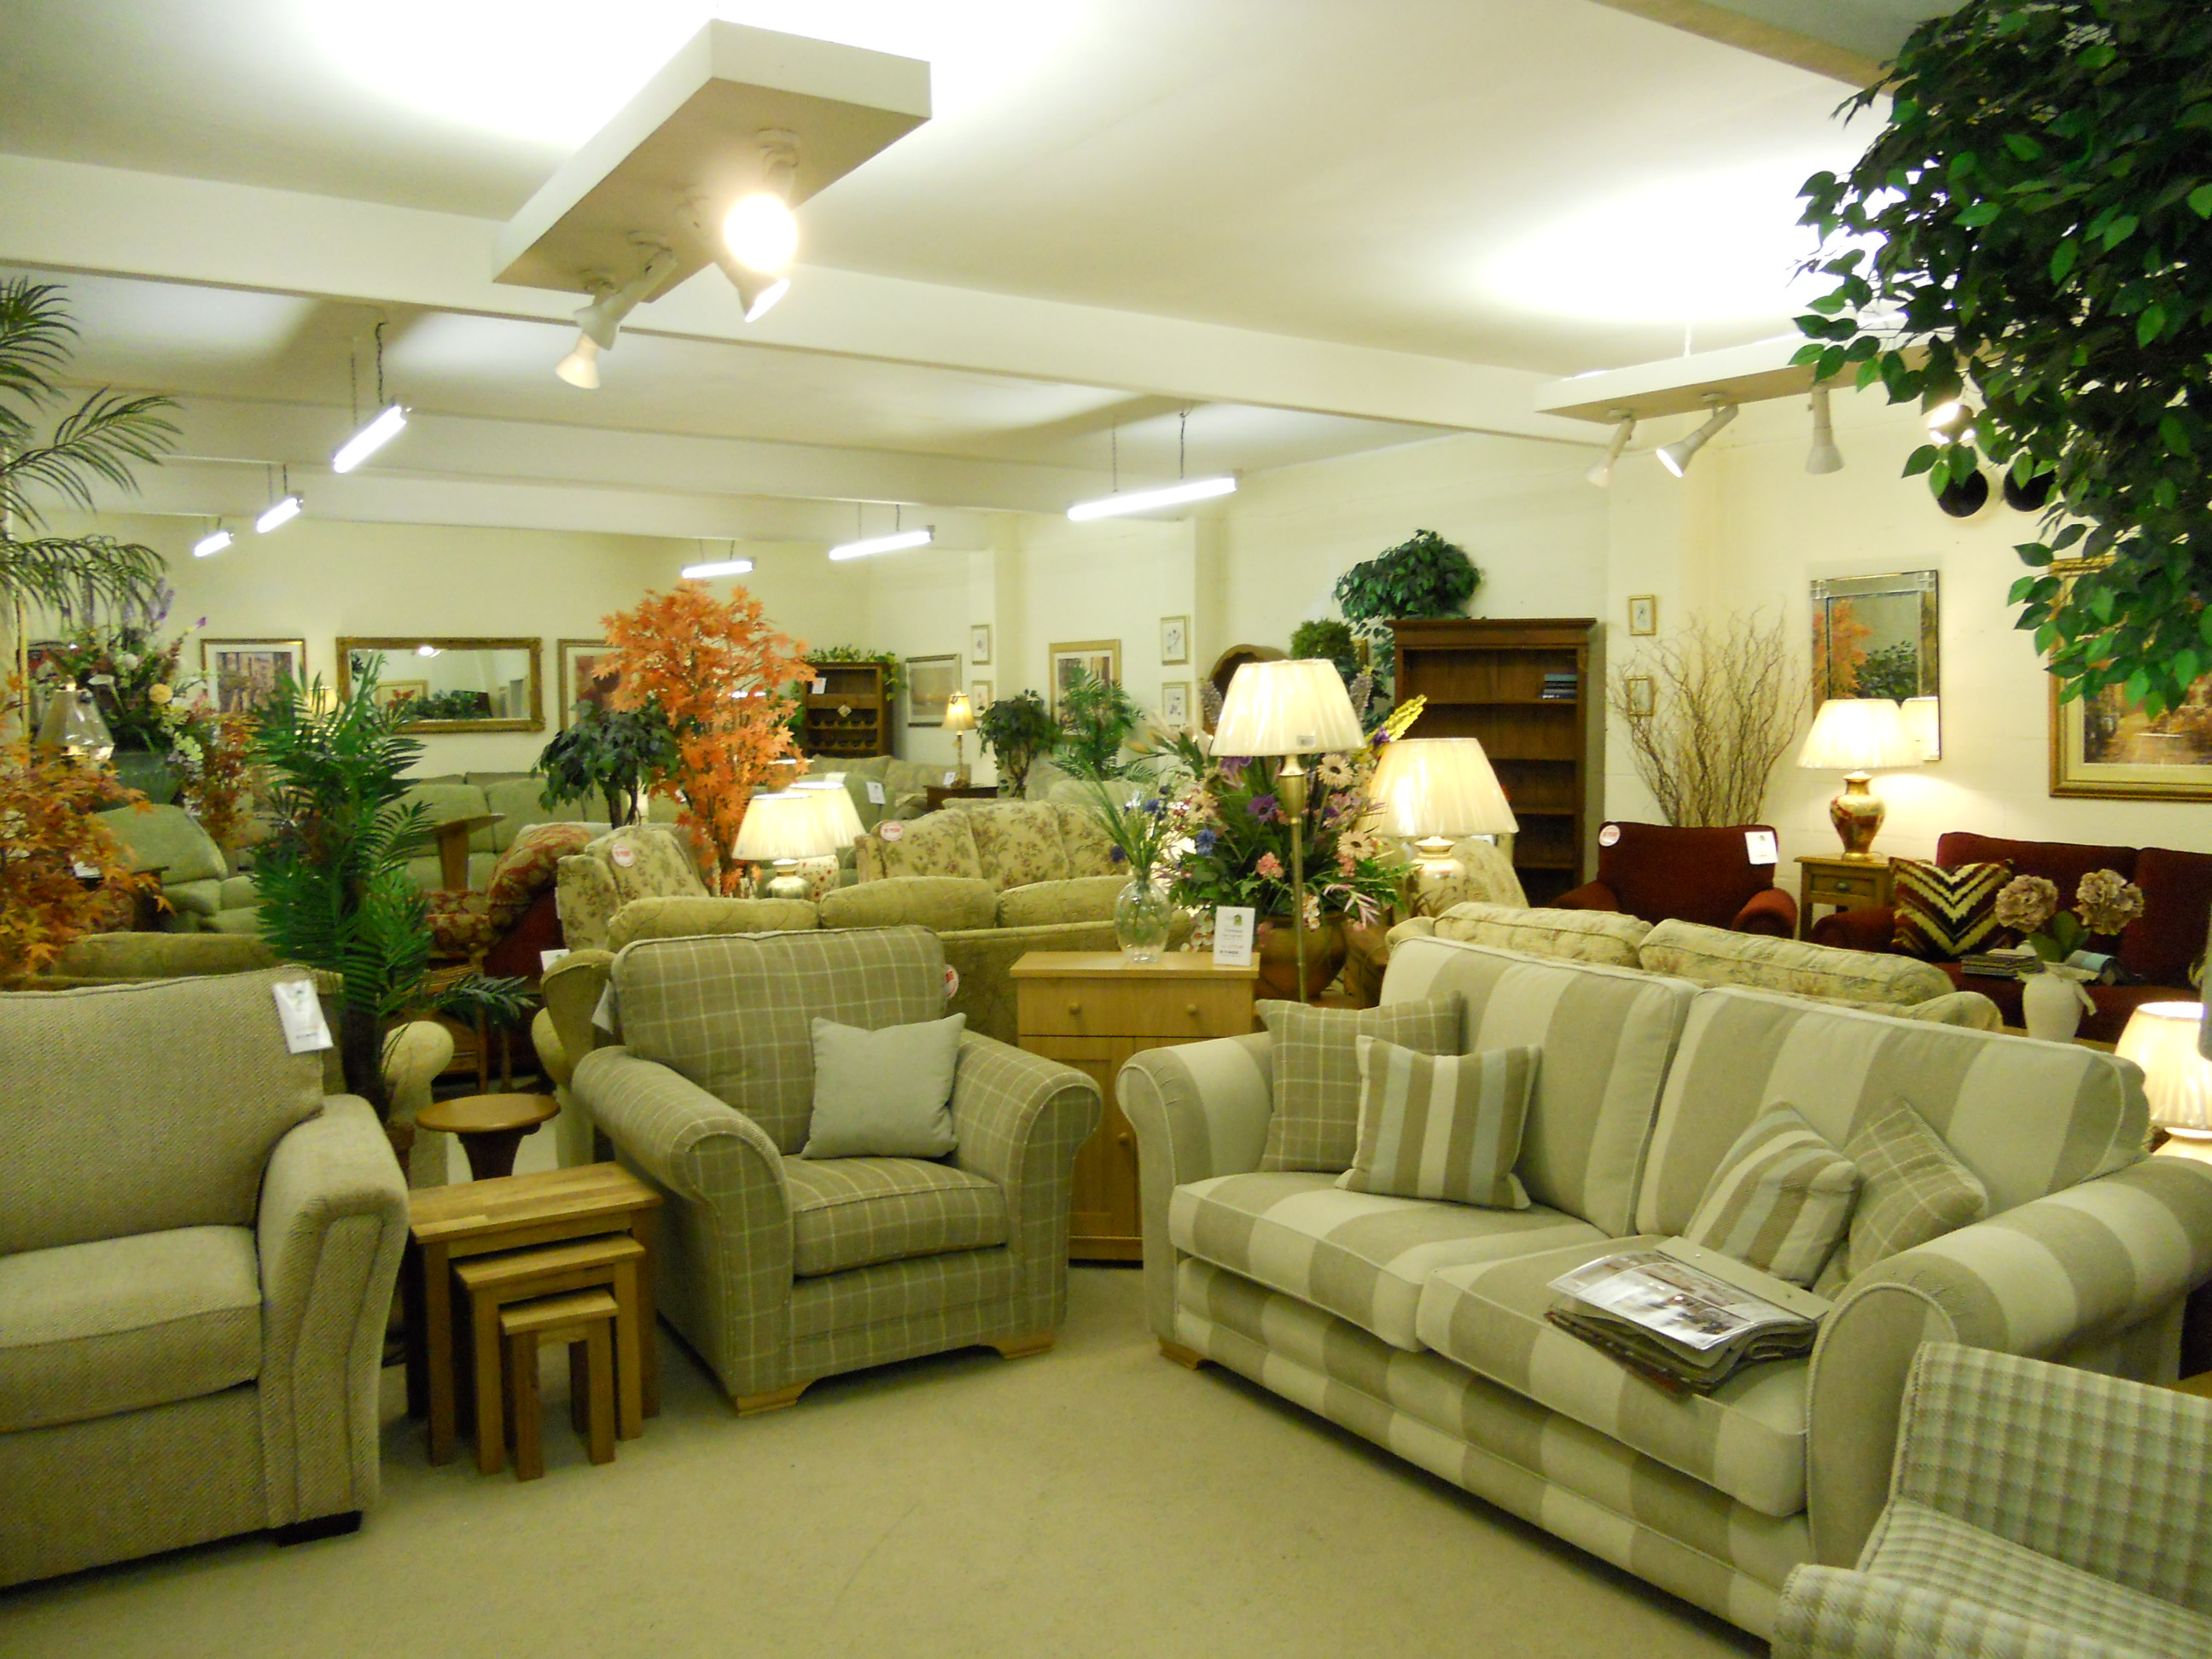 Shannon Sales Sofas and Chairs in Contemporary and Traditional